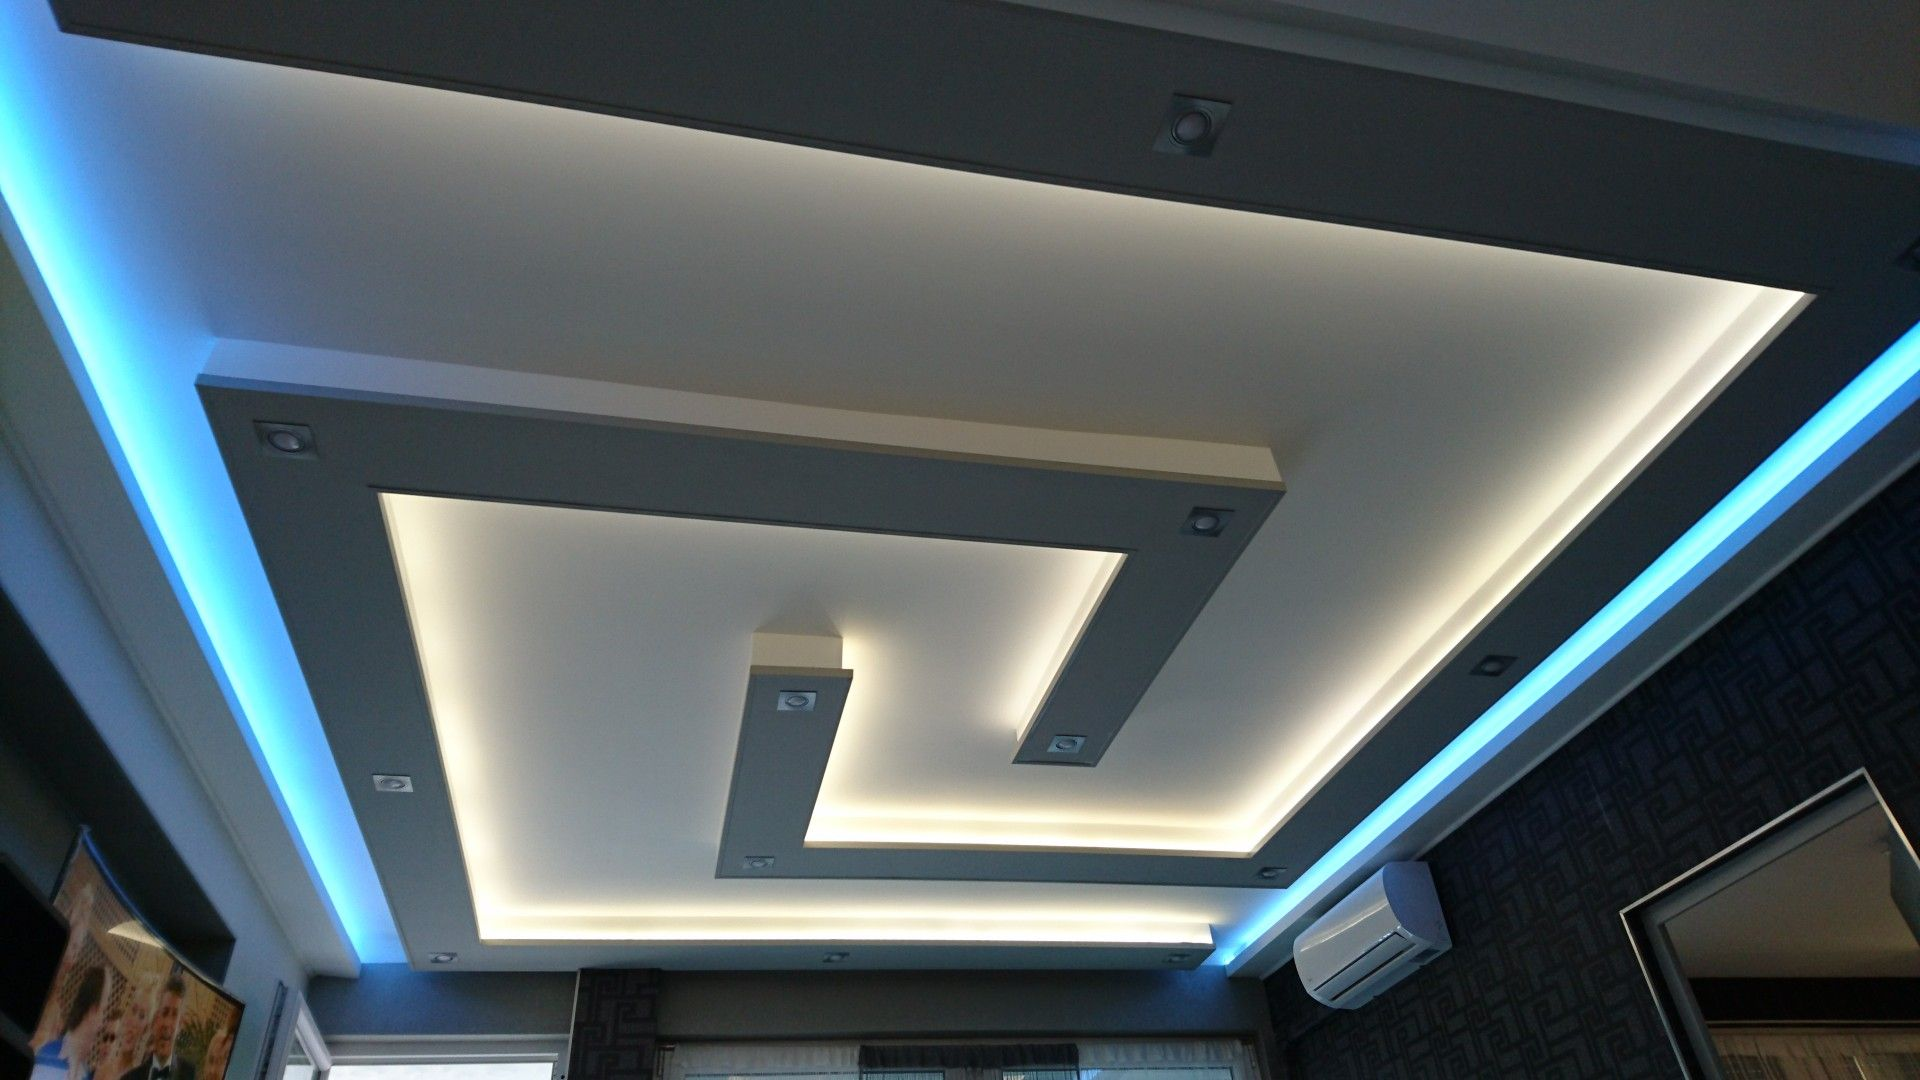 Pin By Hdhshhs Jdjdjd On Epiteszet False Ceiling Design Gypsum Ceiling Design Ceiling Design Living Room